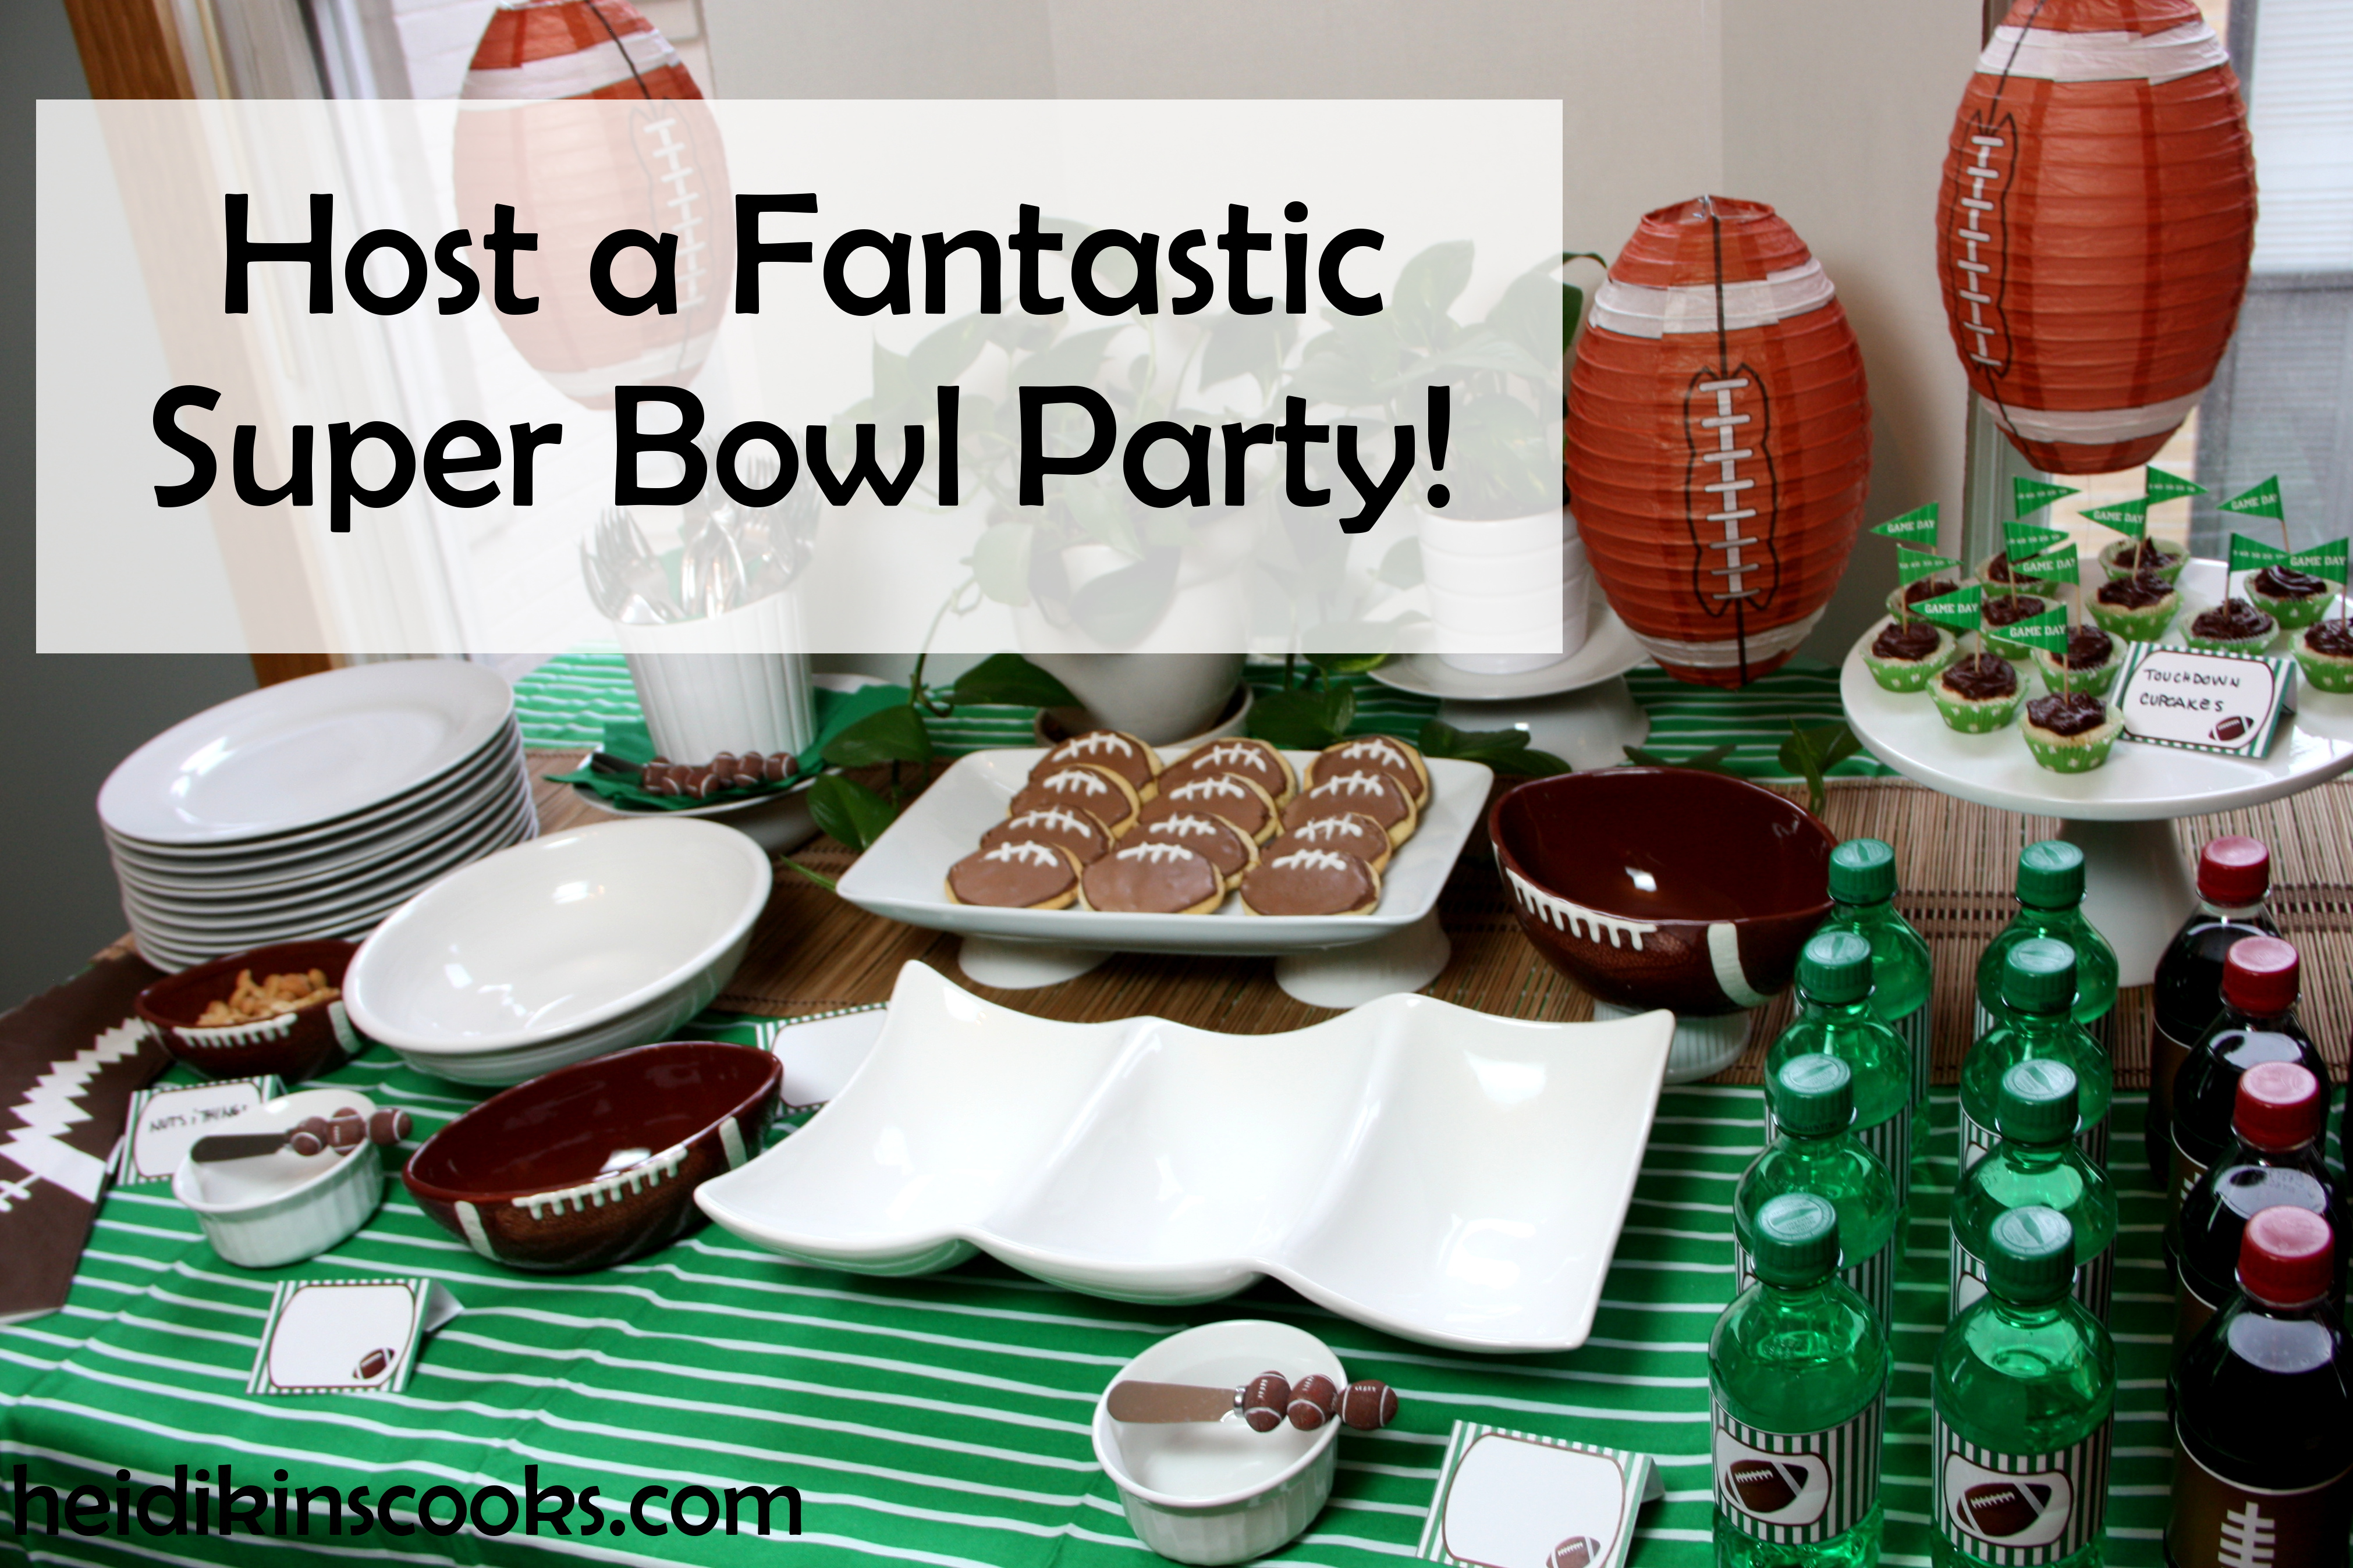 How to Host a Super Bowl Party on a Budget